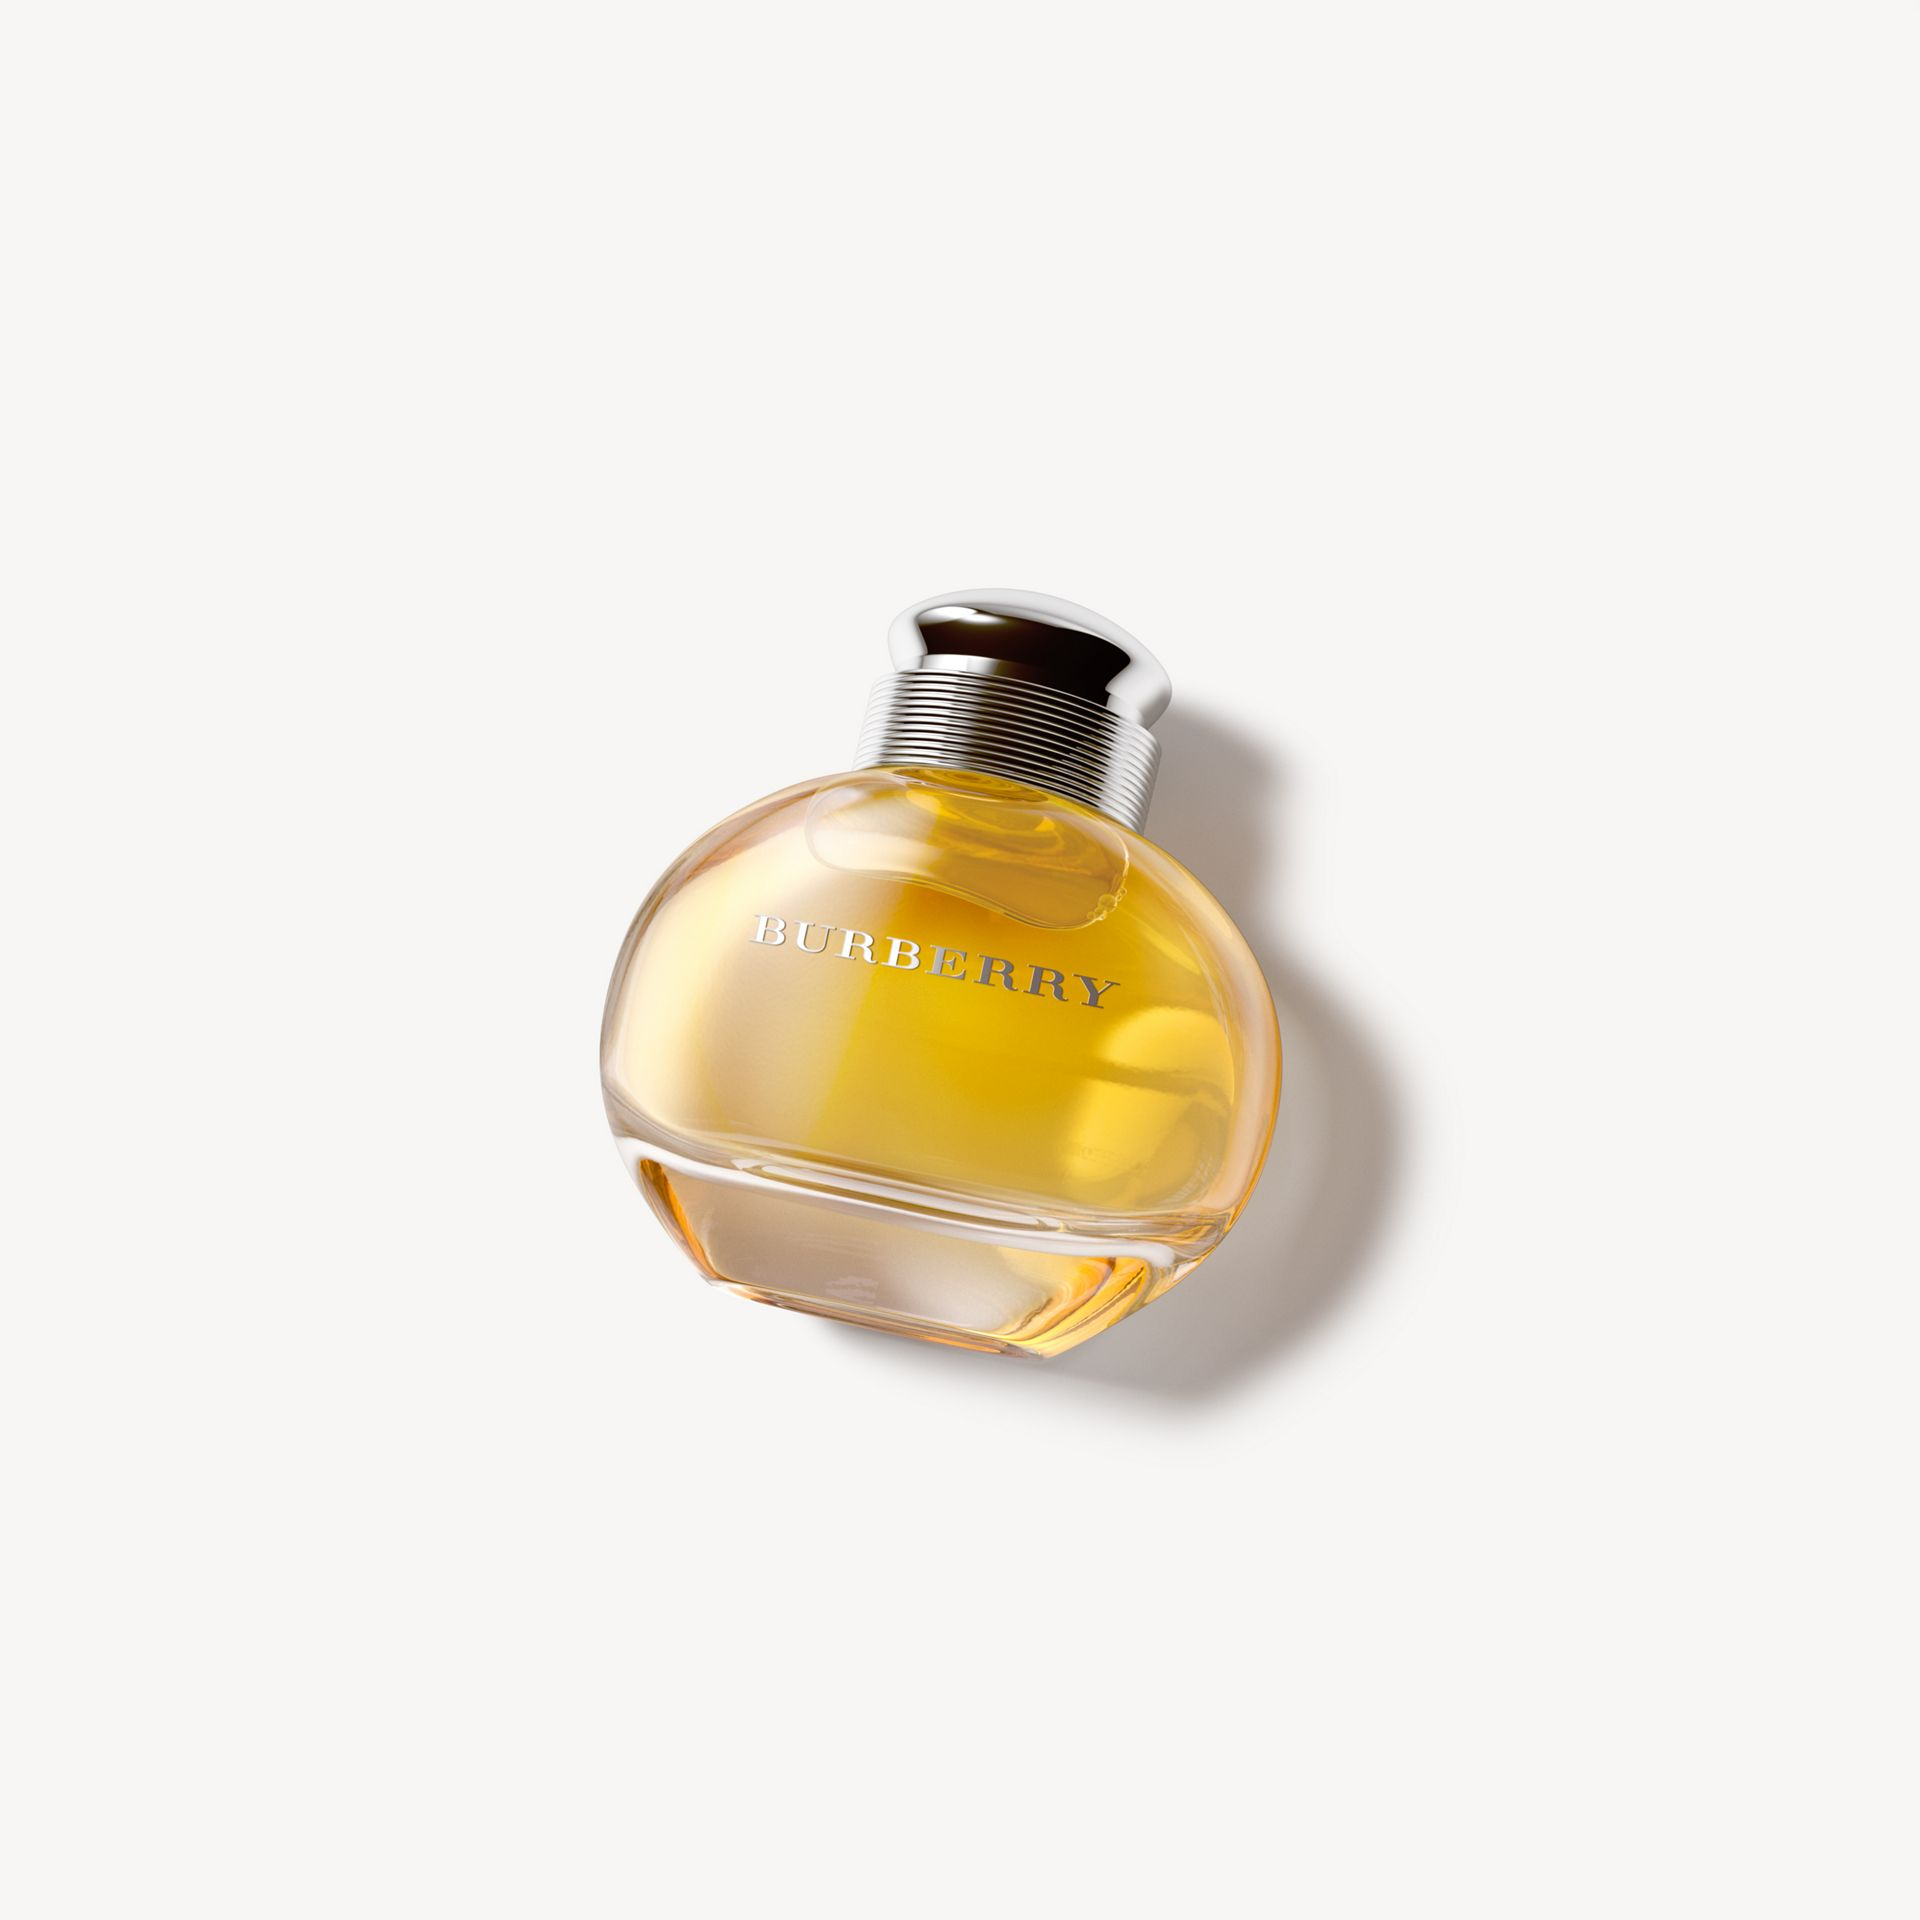 Burberry For Women Eau de Parfum 50ml - Women | Burberry United States - gallery image 0